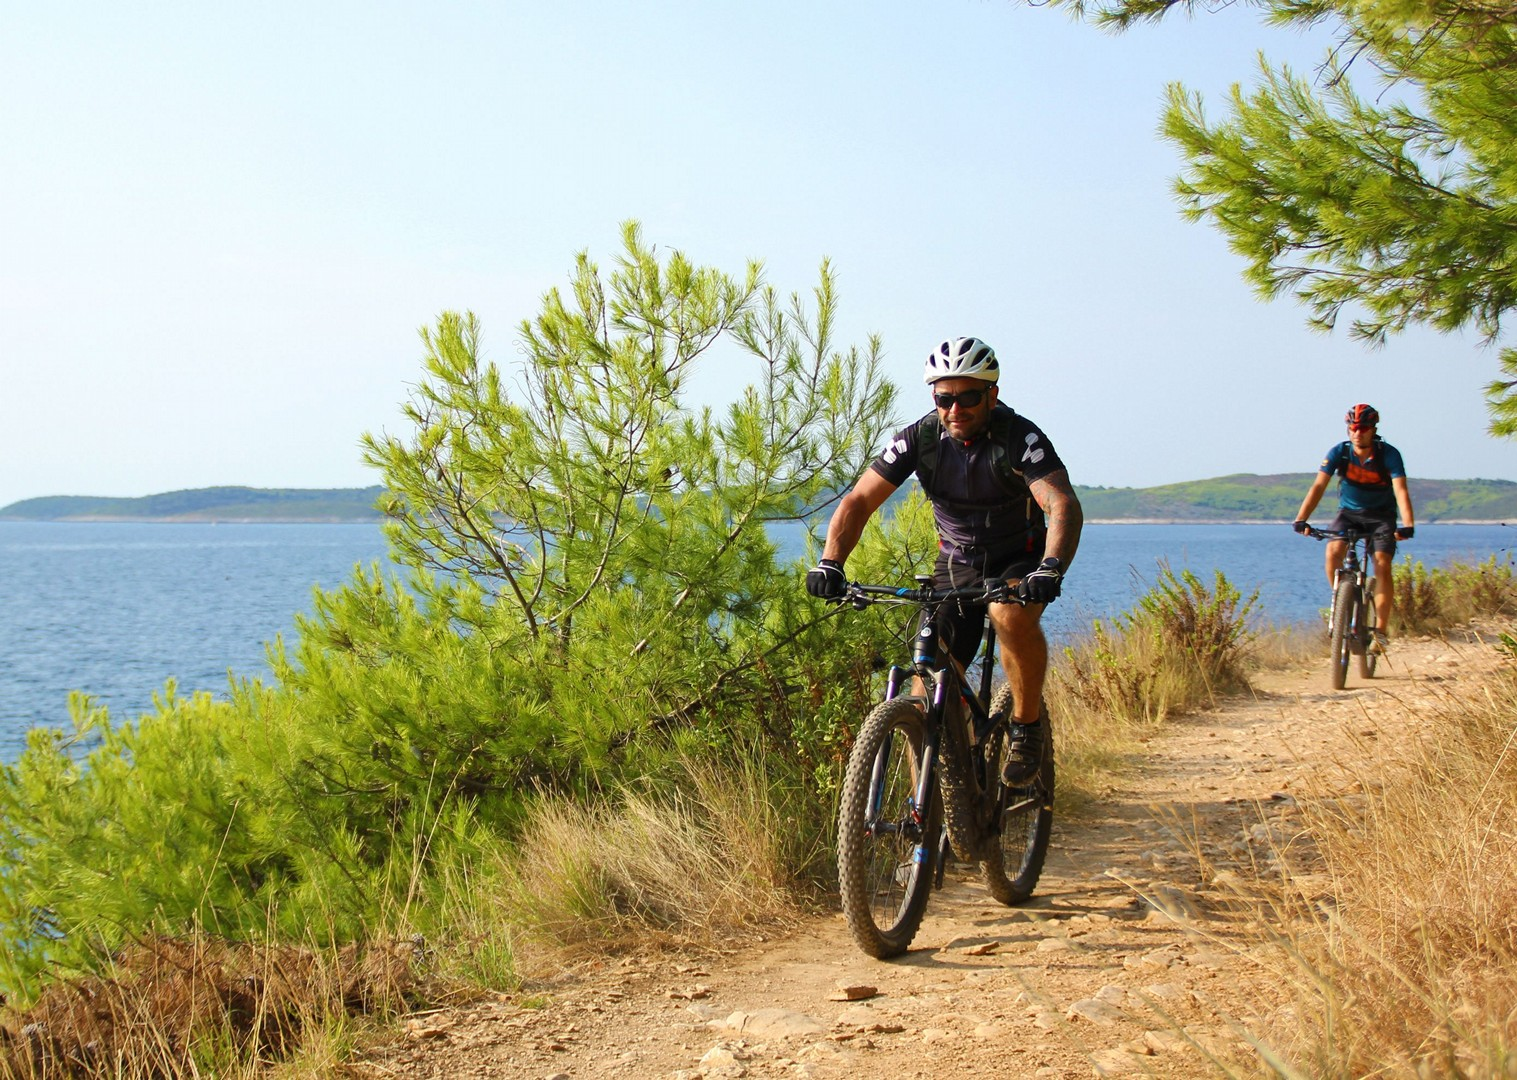 biking-in-croatia-guided-holiday-skedaddle.JPG - Croatia - Terra Magica - Mountain Biking